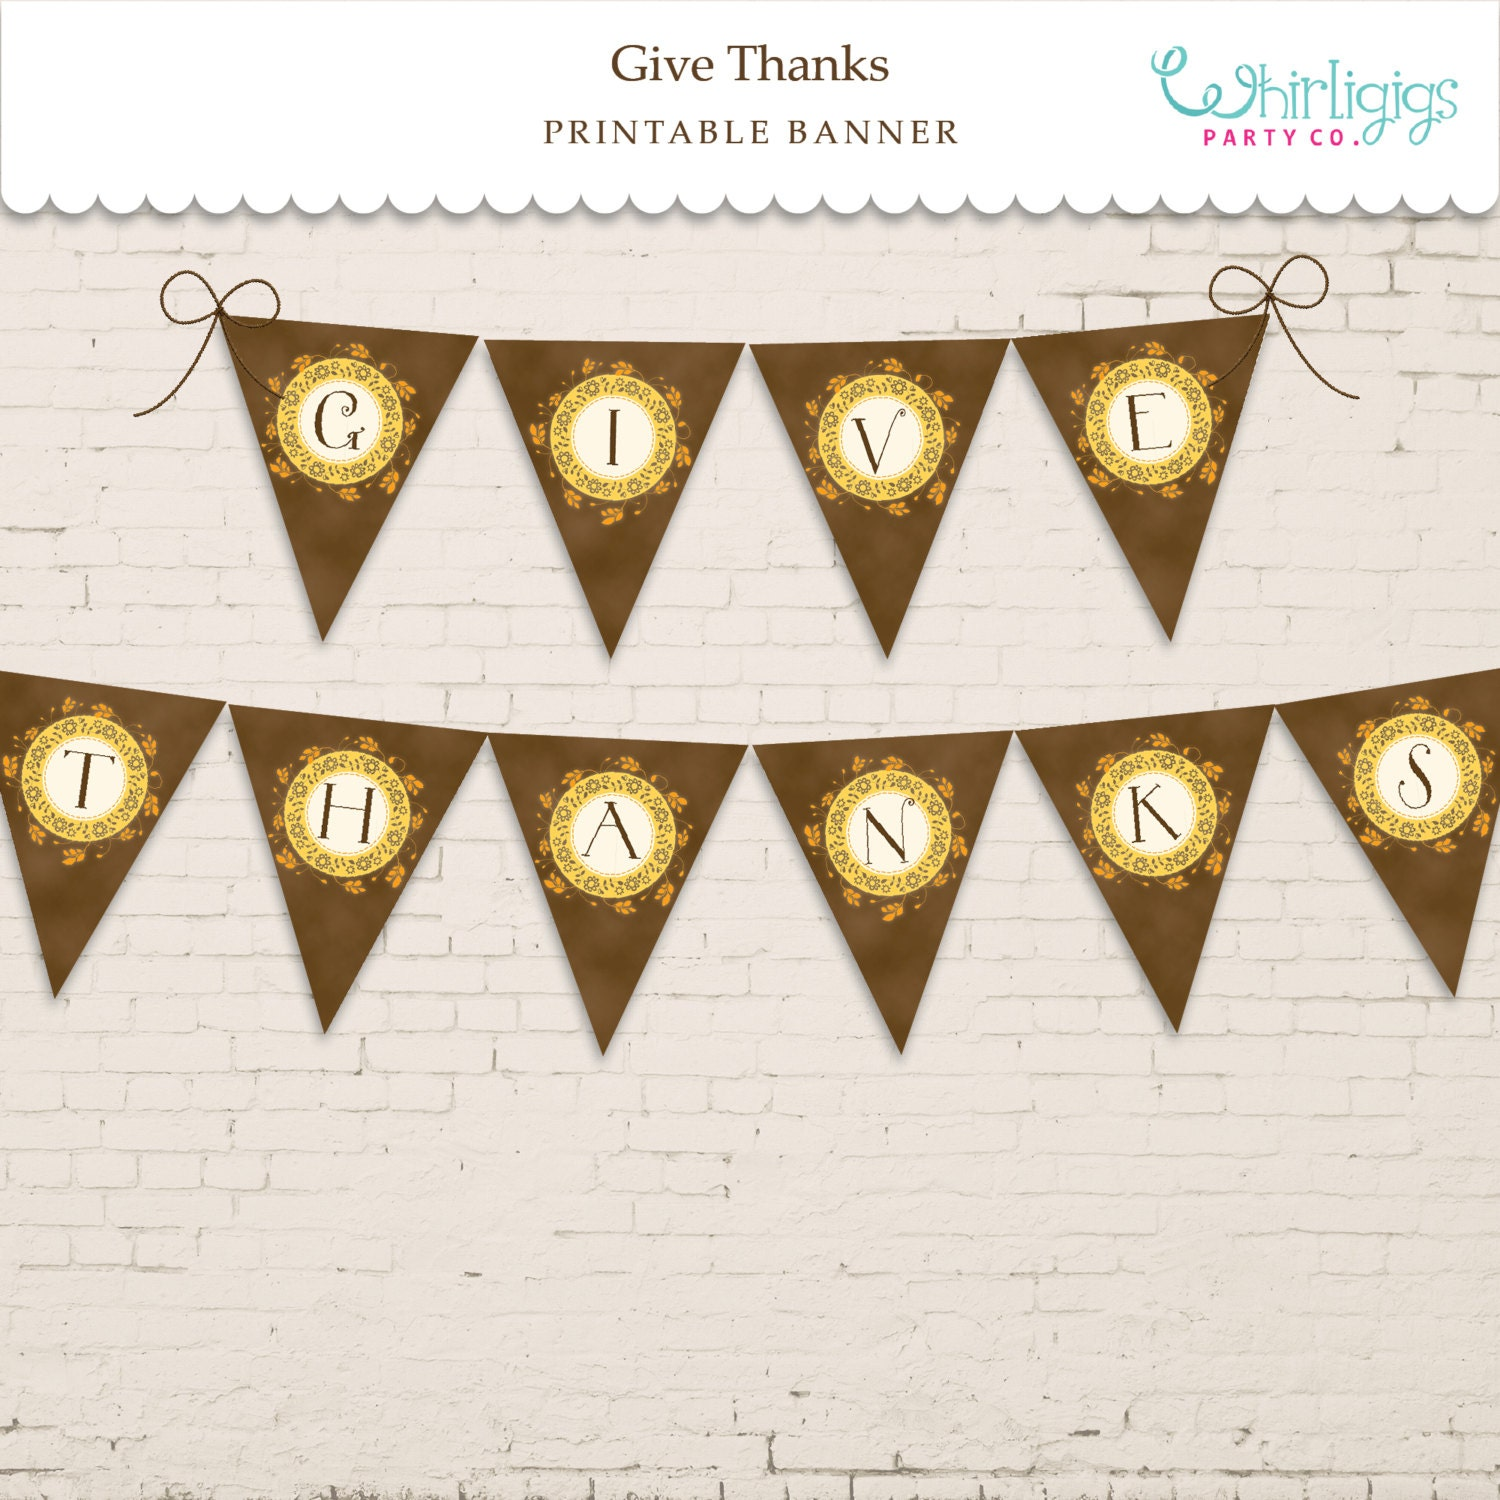 Universal image for give thanks banner printable